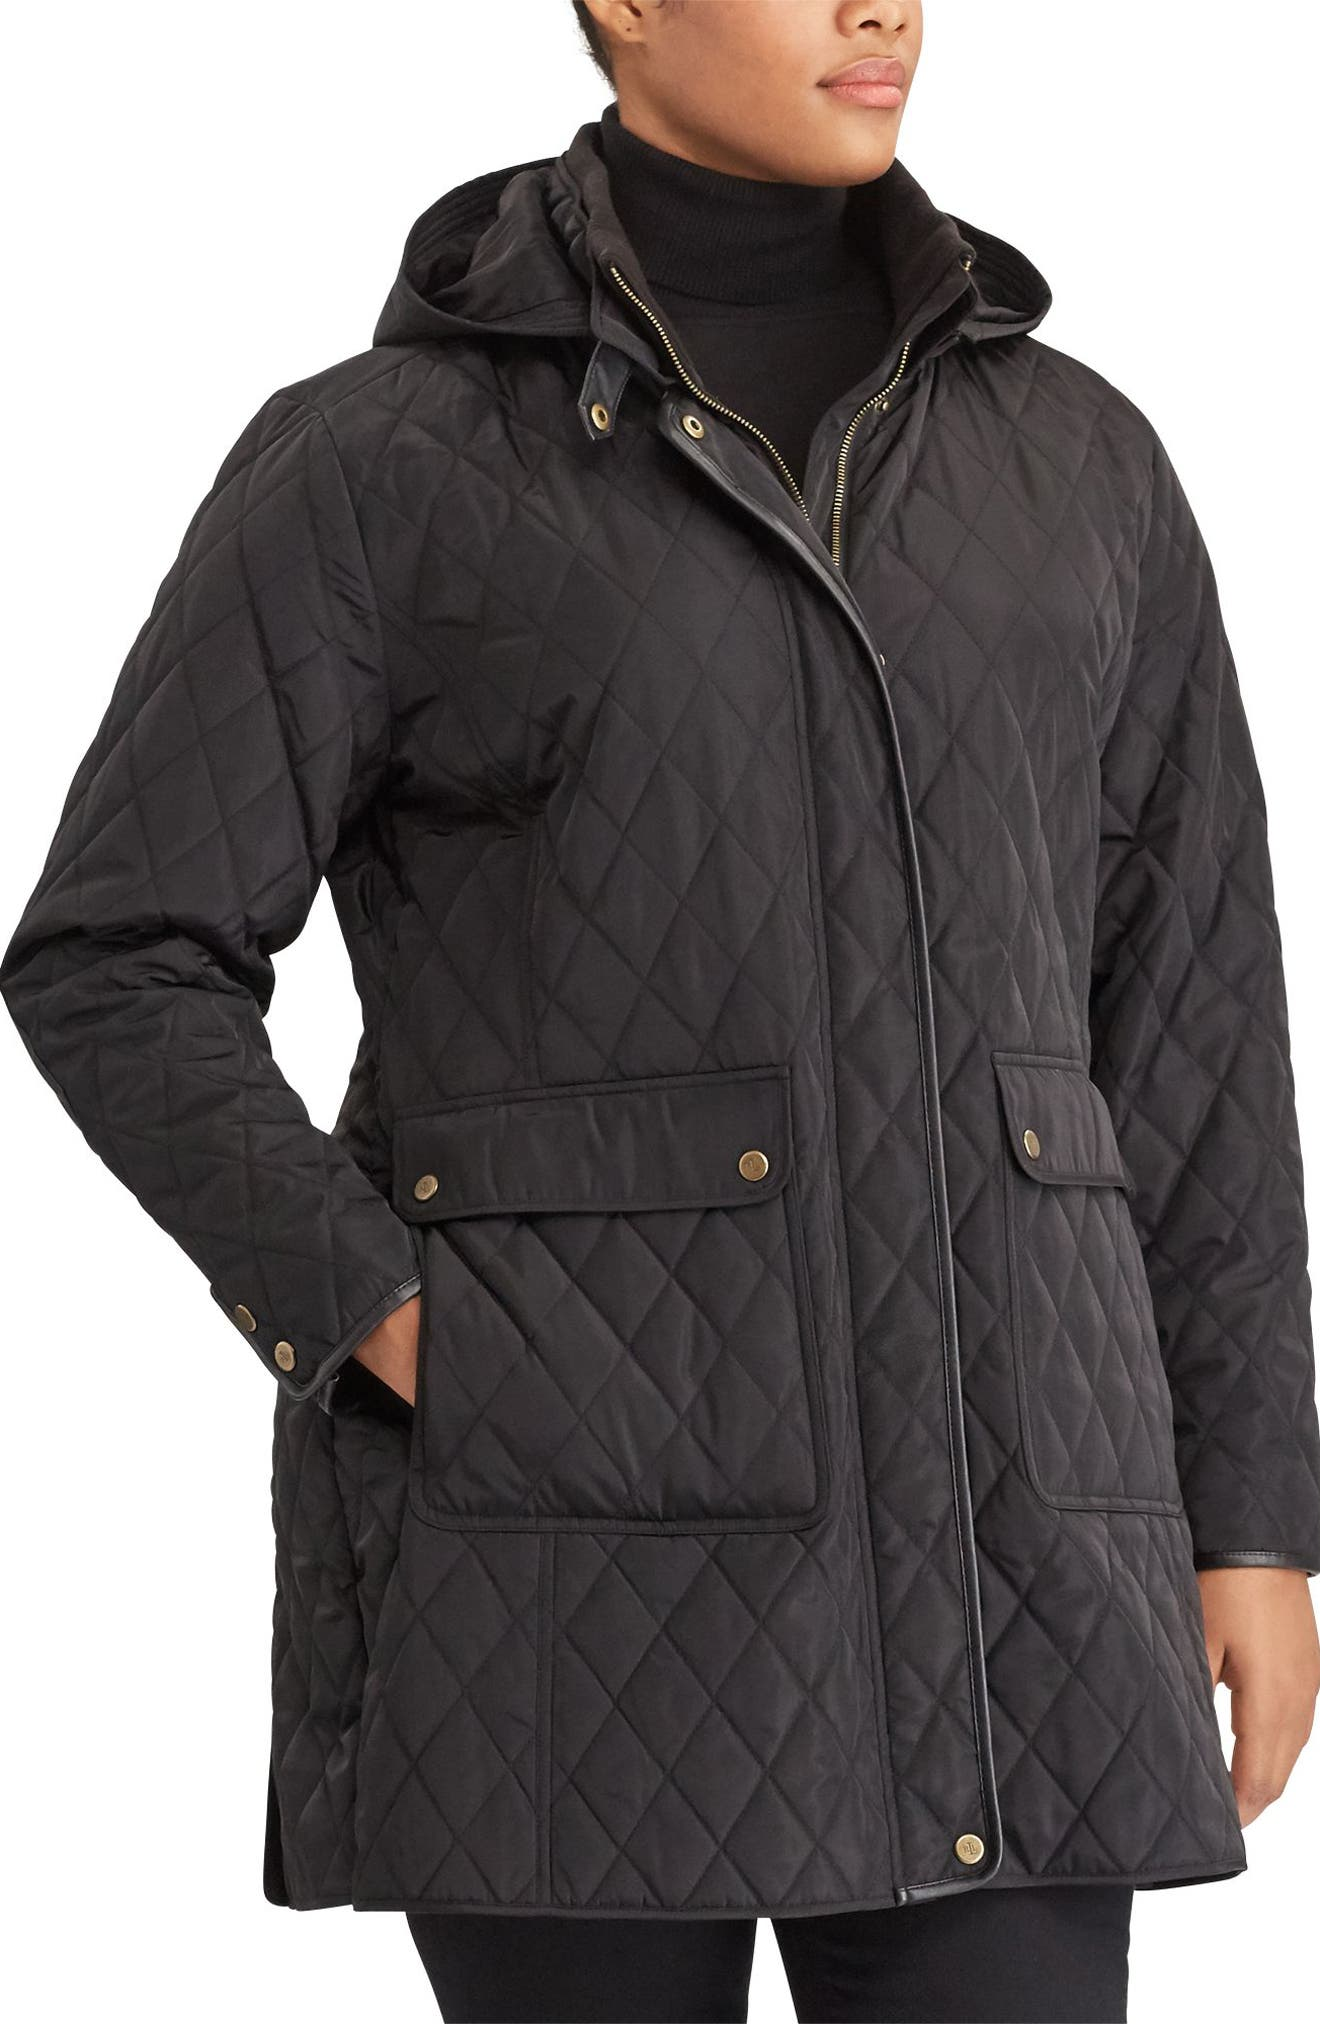 Diamond Quilted Jacket with Faux Leather Trim,                         Main,                         color, Black